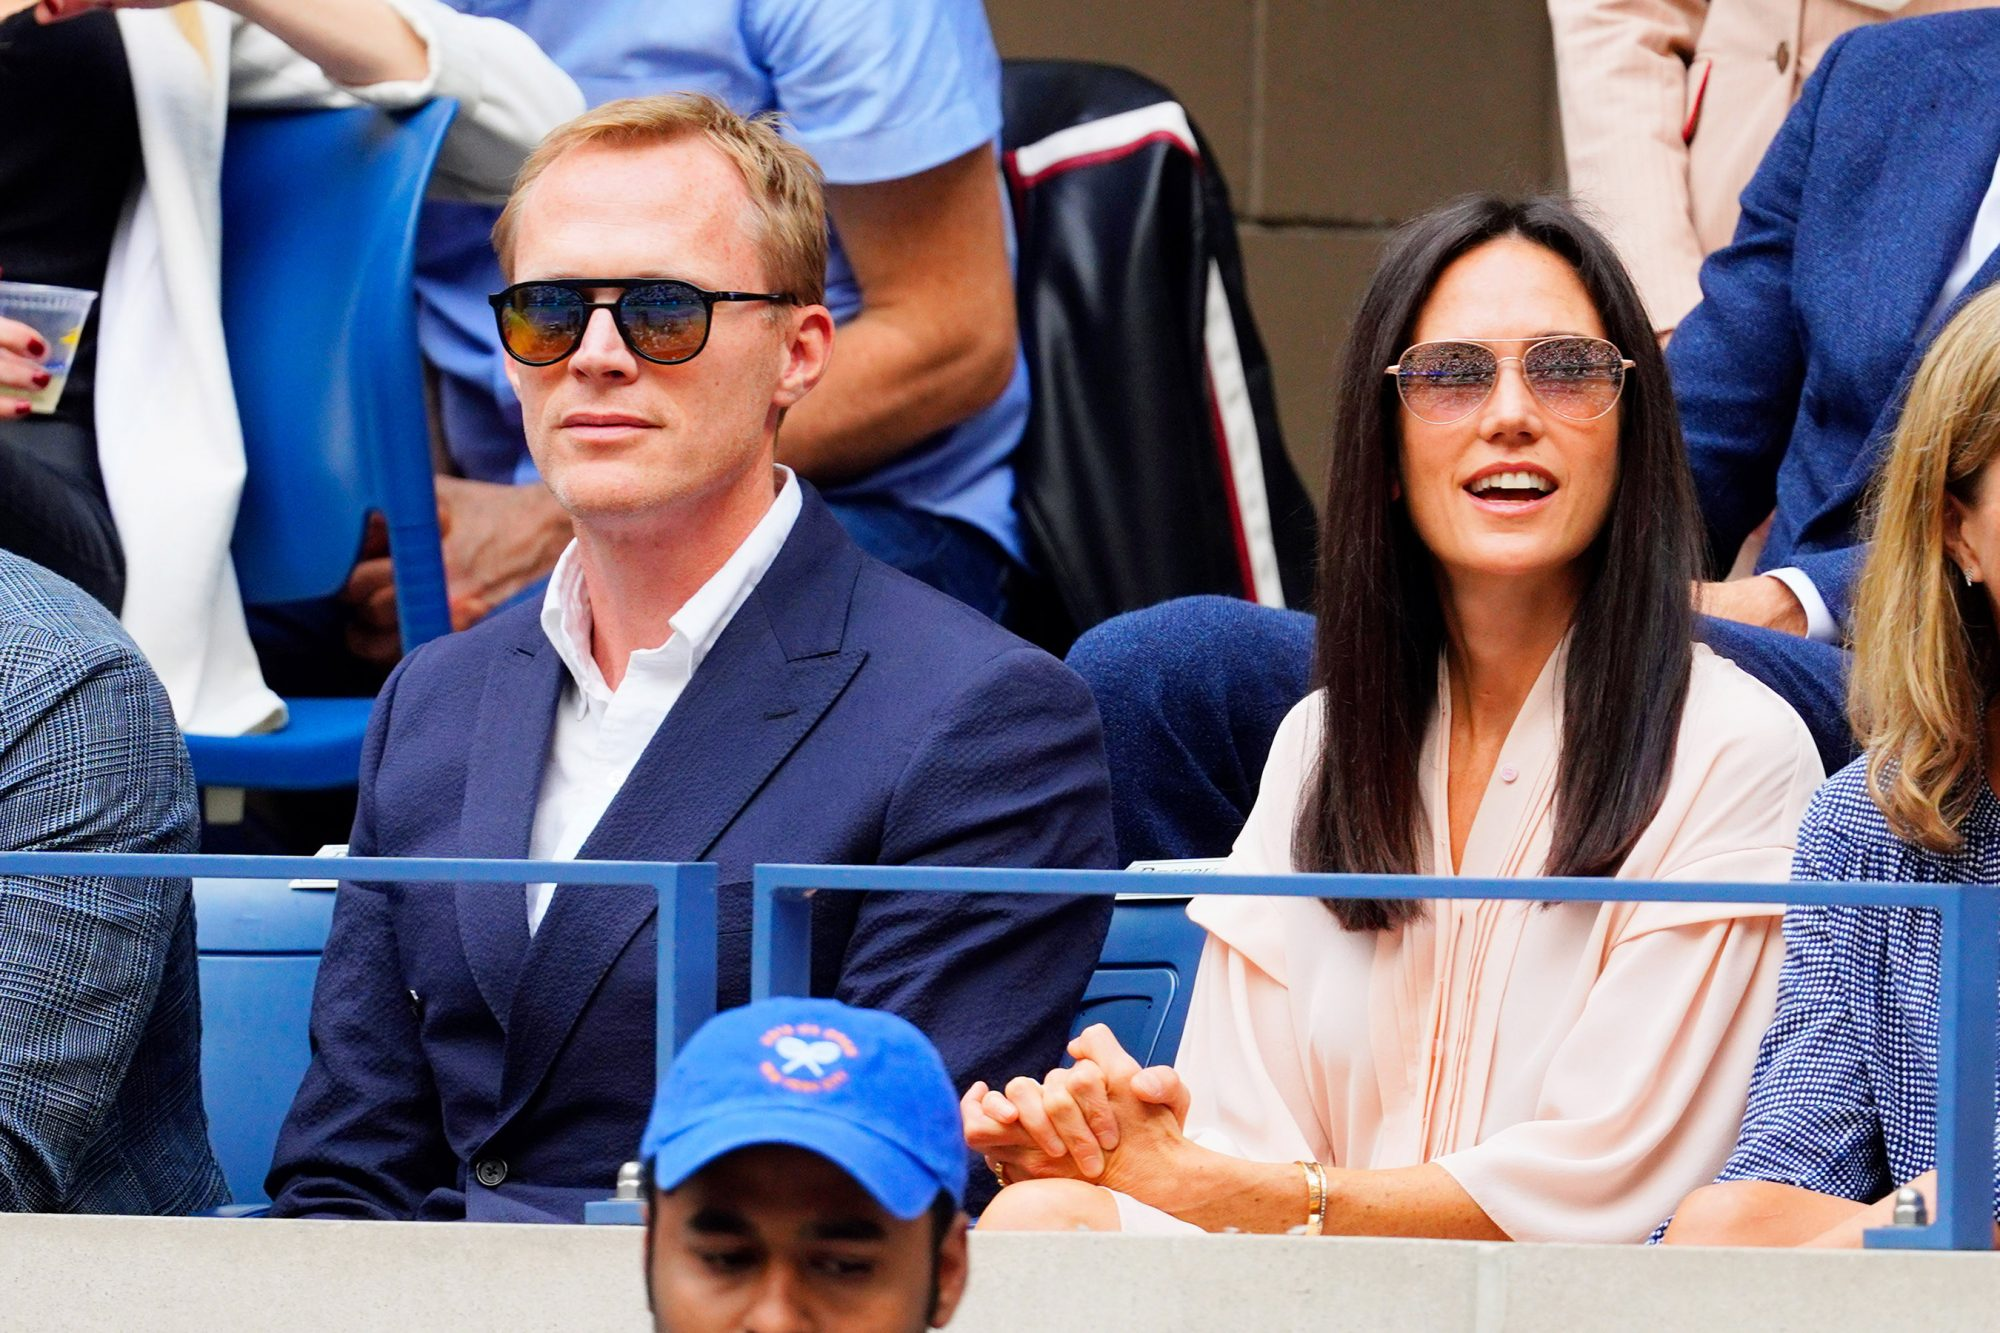 Paul Bettany and Jennifer Connelley